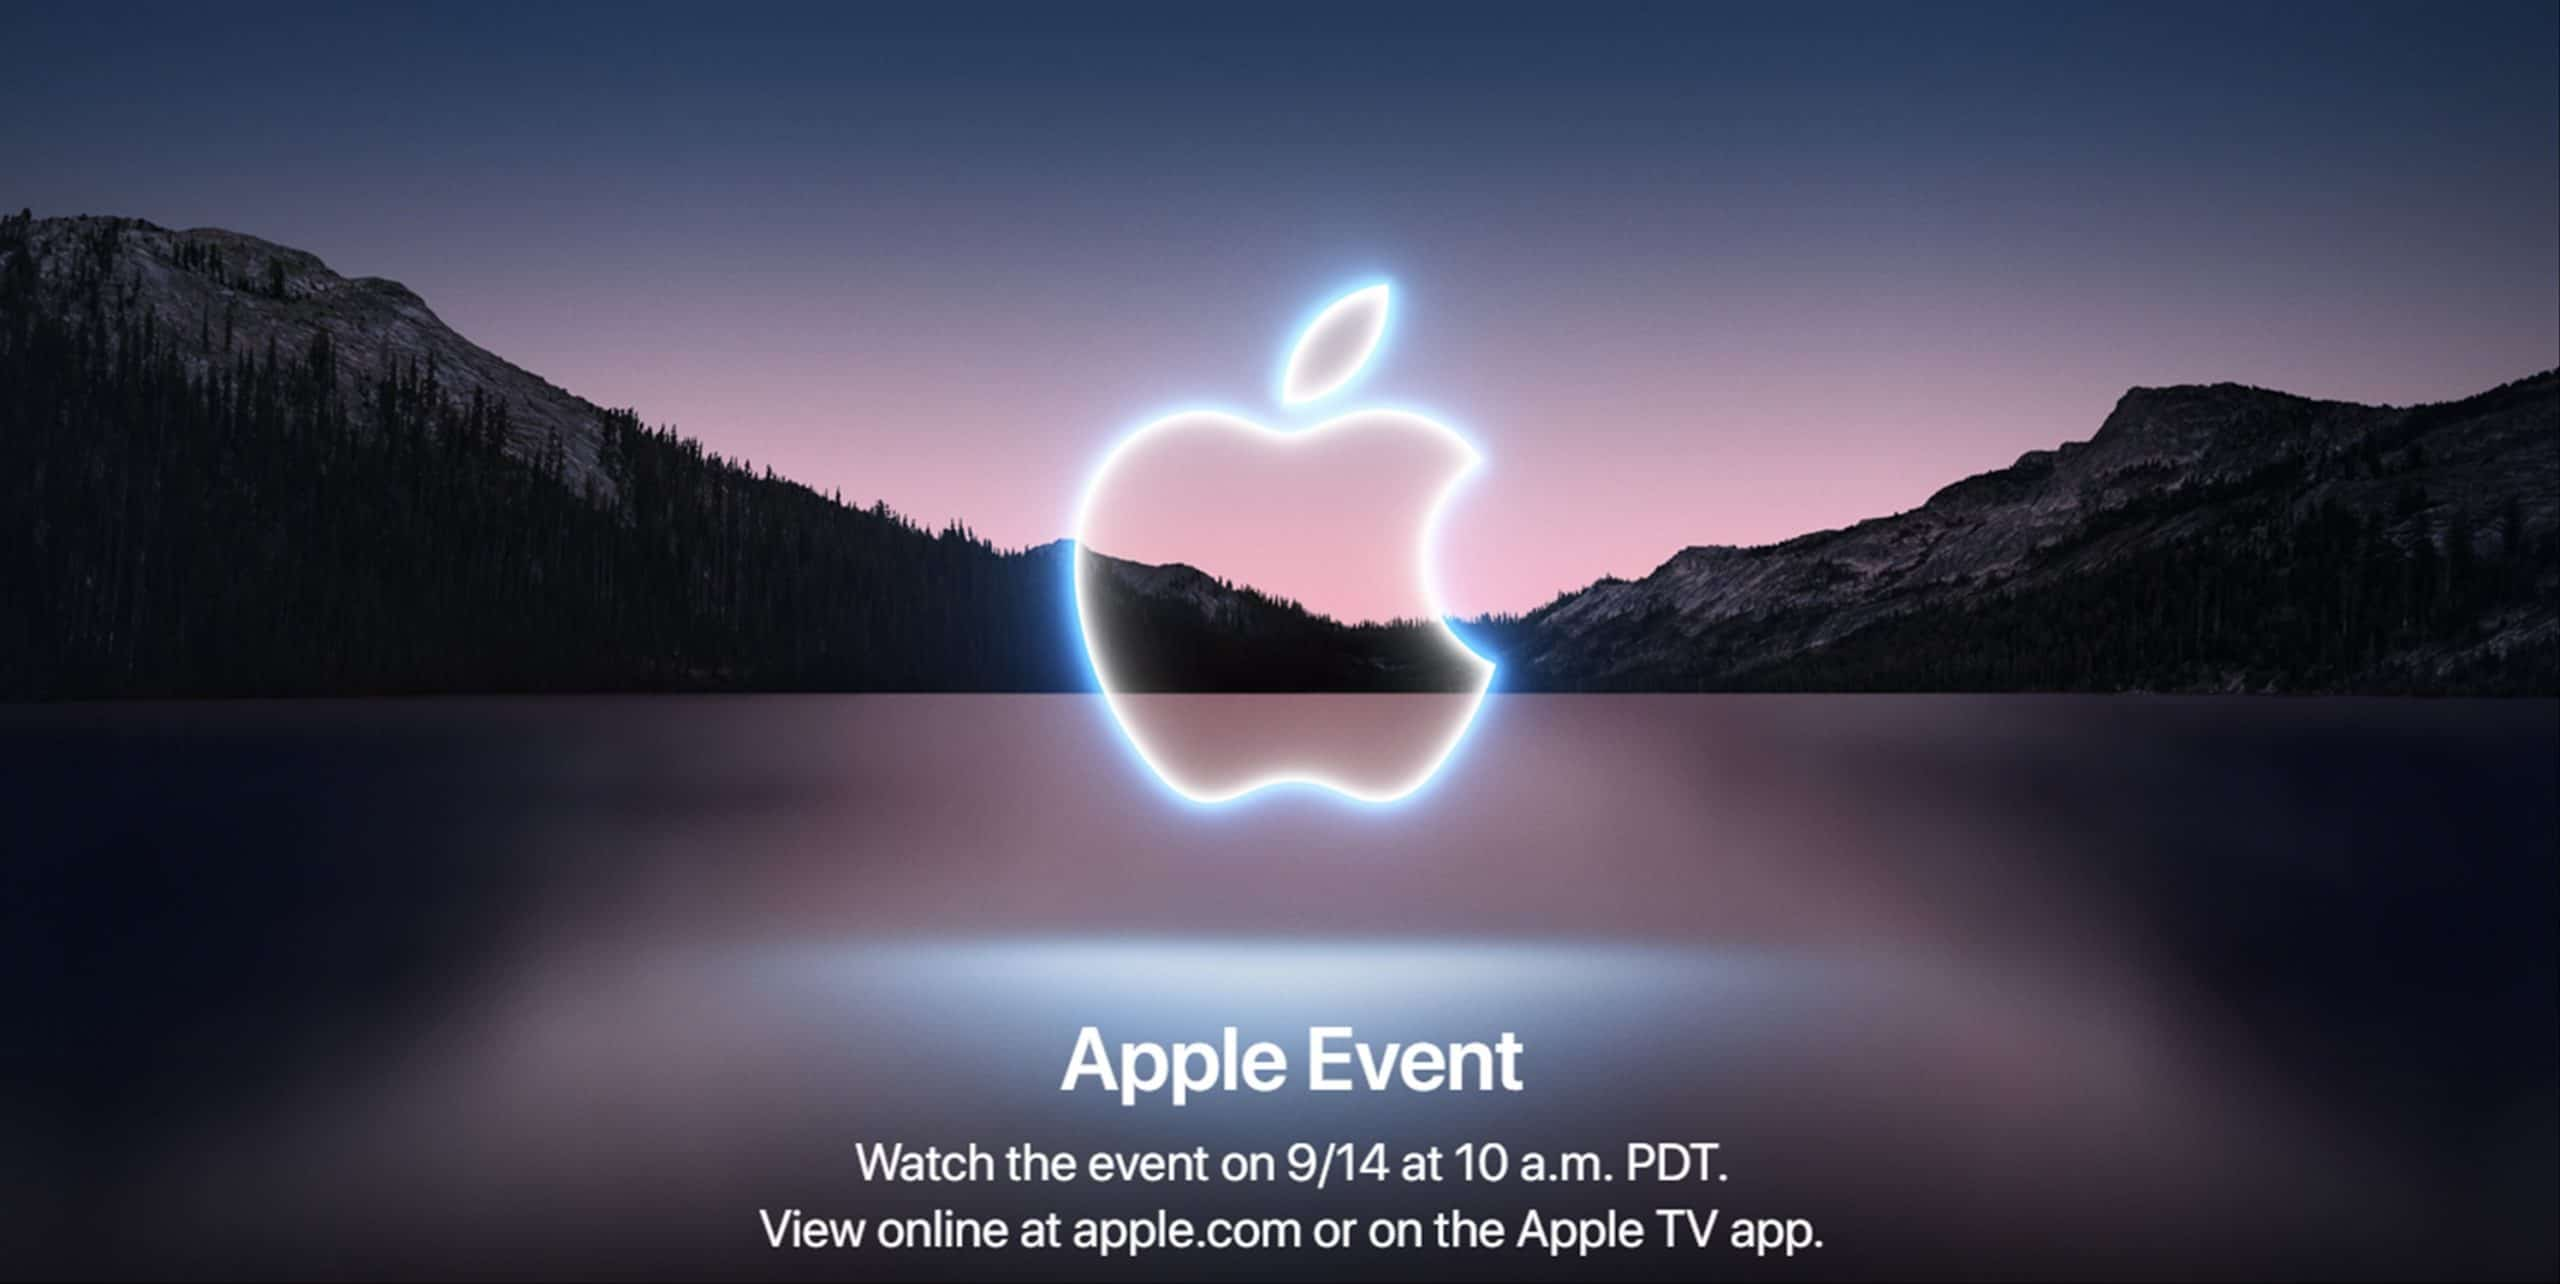 It's official! iPhone 13 will be announced next week